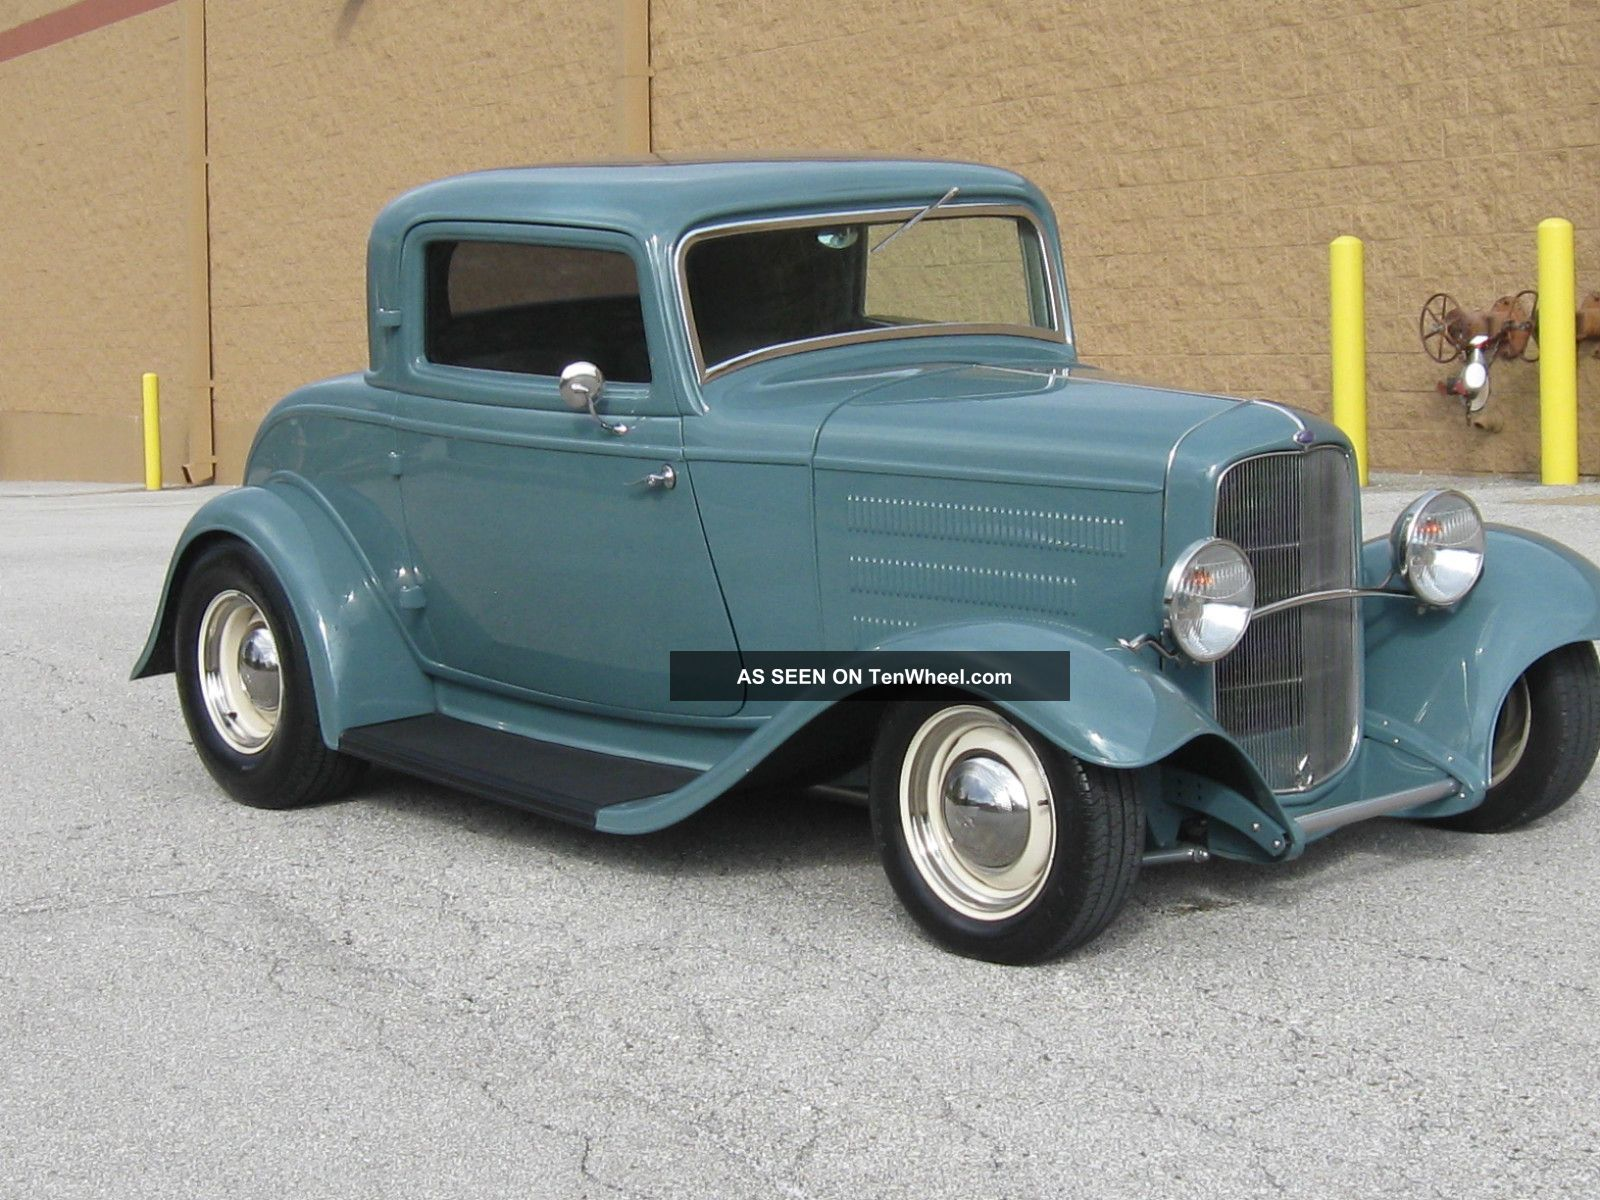 32 ford 5 window steel body for sale autos weblog for 1932 ford 3 window coupe steel body